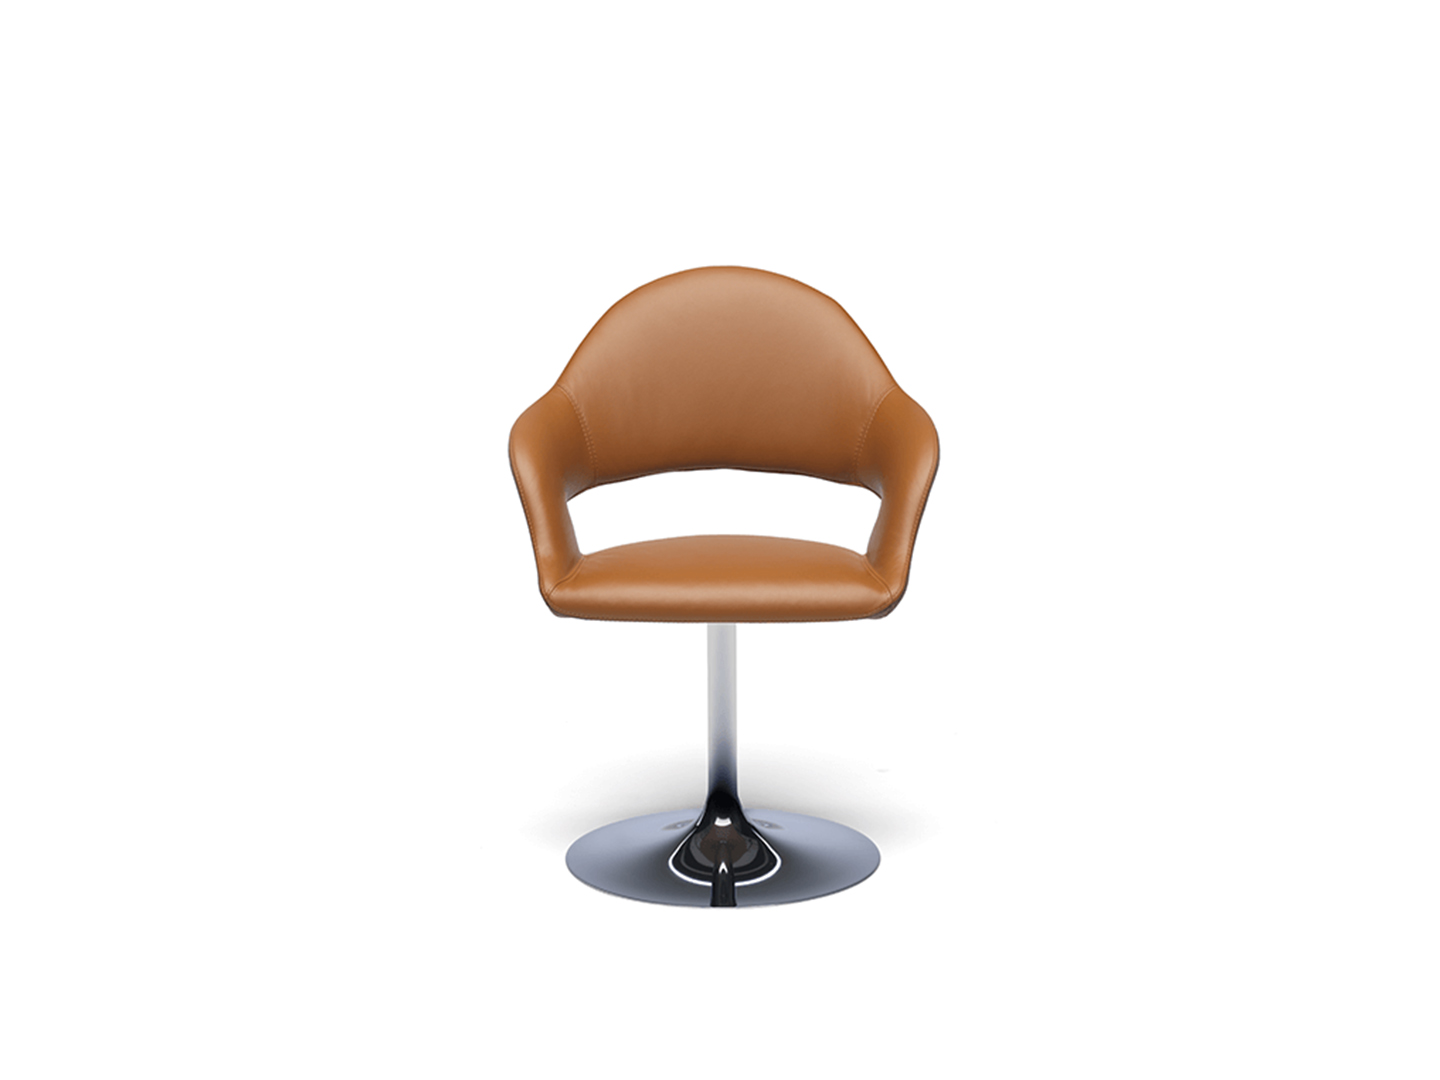 Ginevra chair and stool